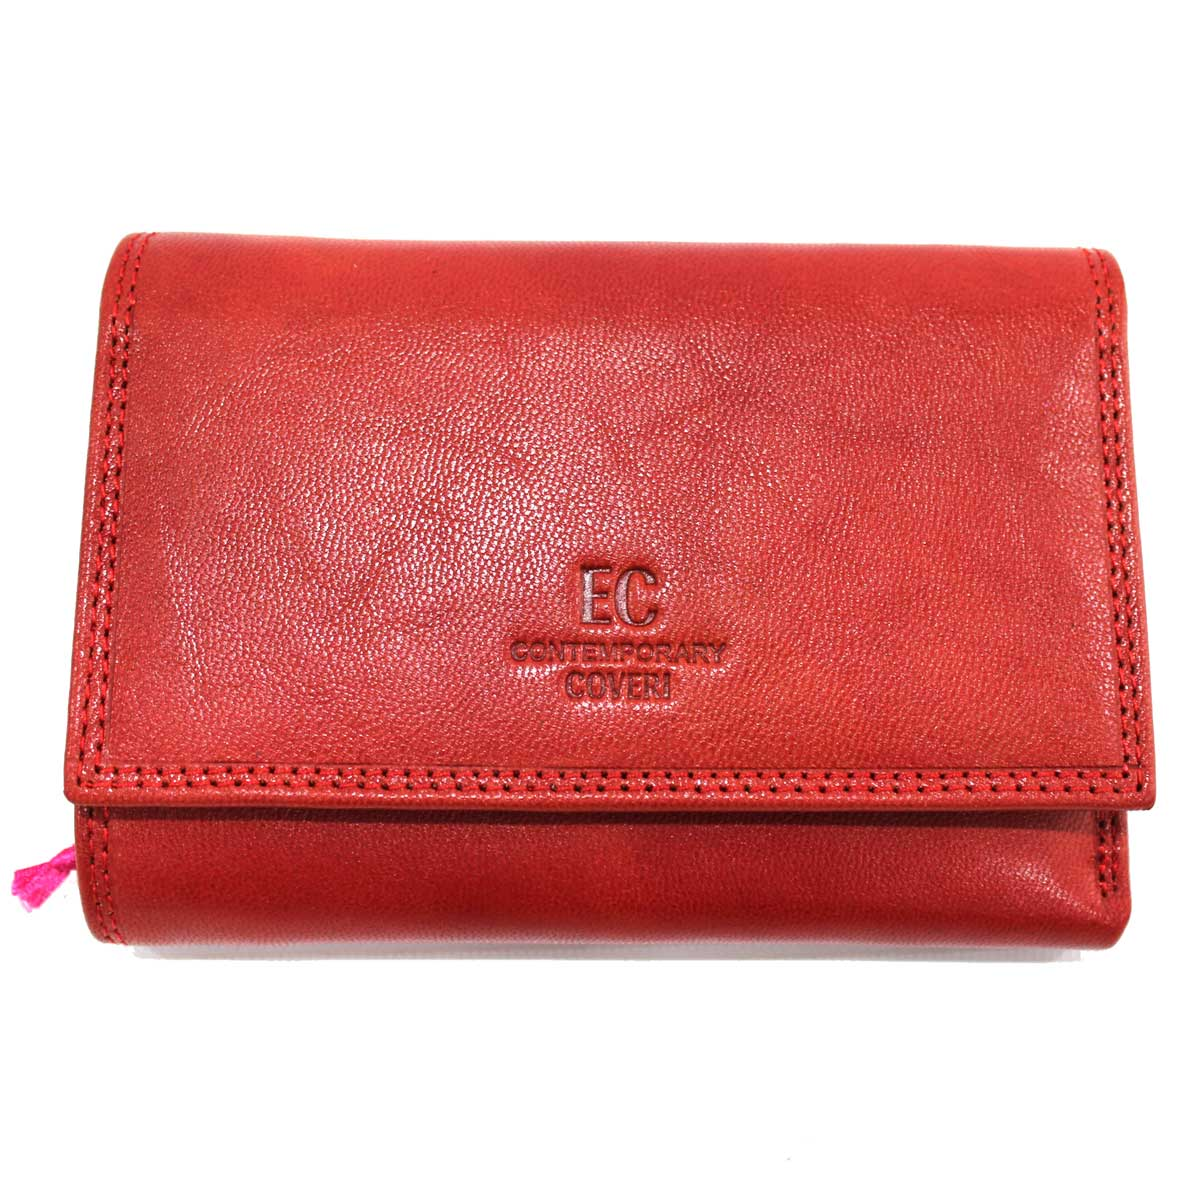 48d91bed4b Women's LEATHER wallet with coin purse CONTEMPORARY COVERI 171-156 red  Colour: Red